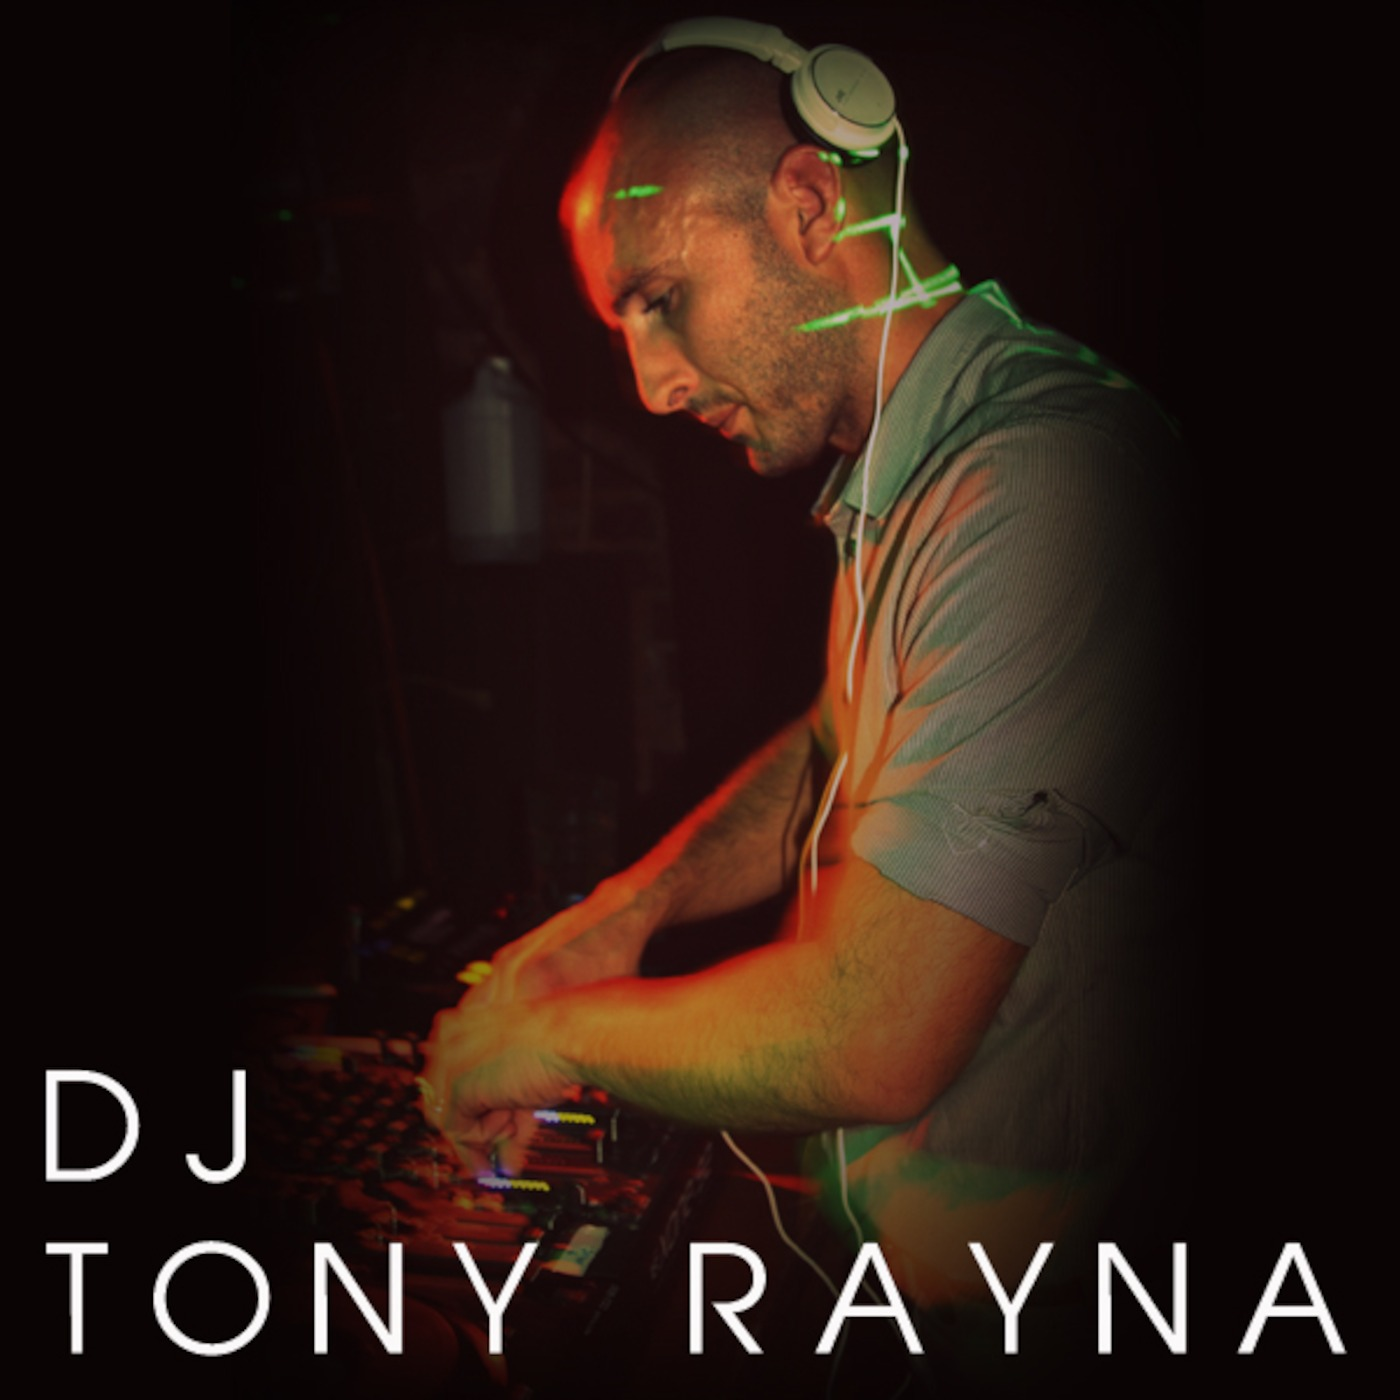 Dj tony rayna's Podcast